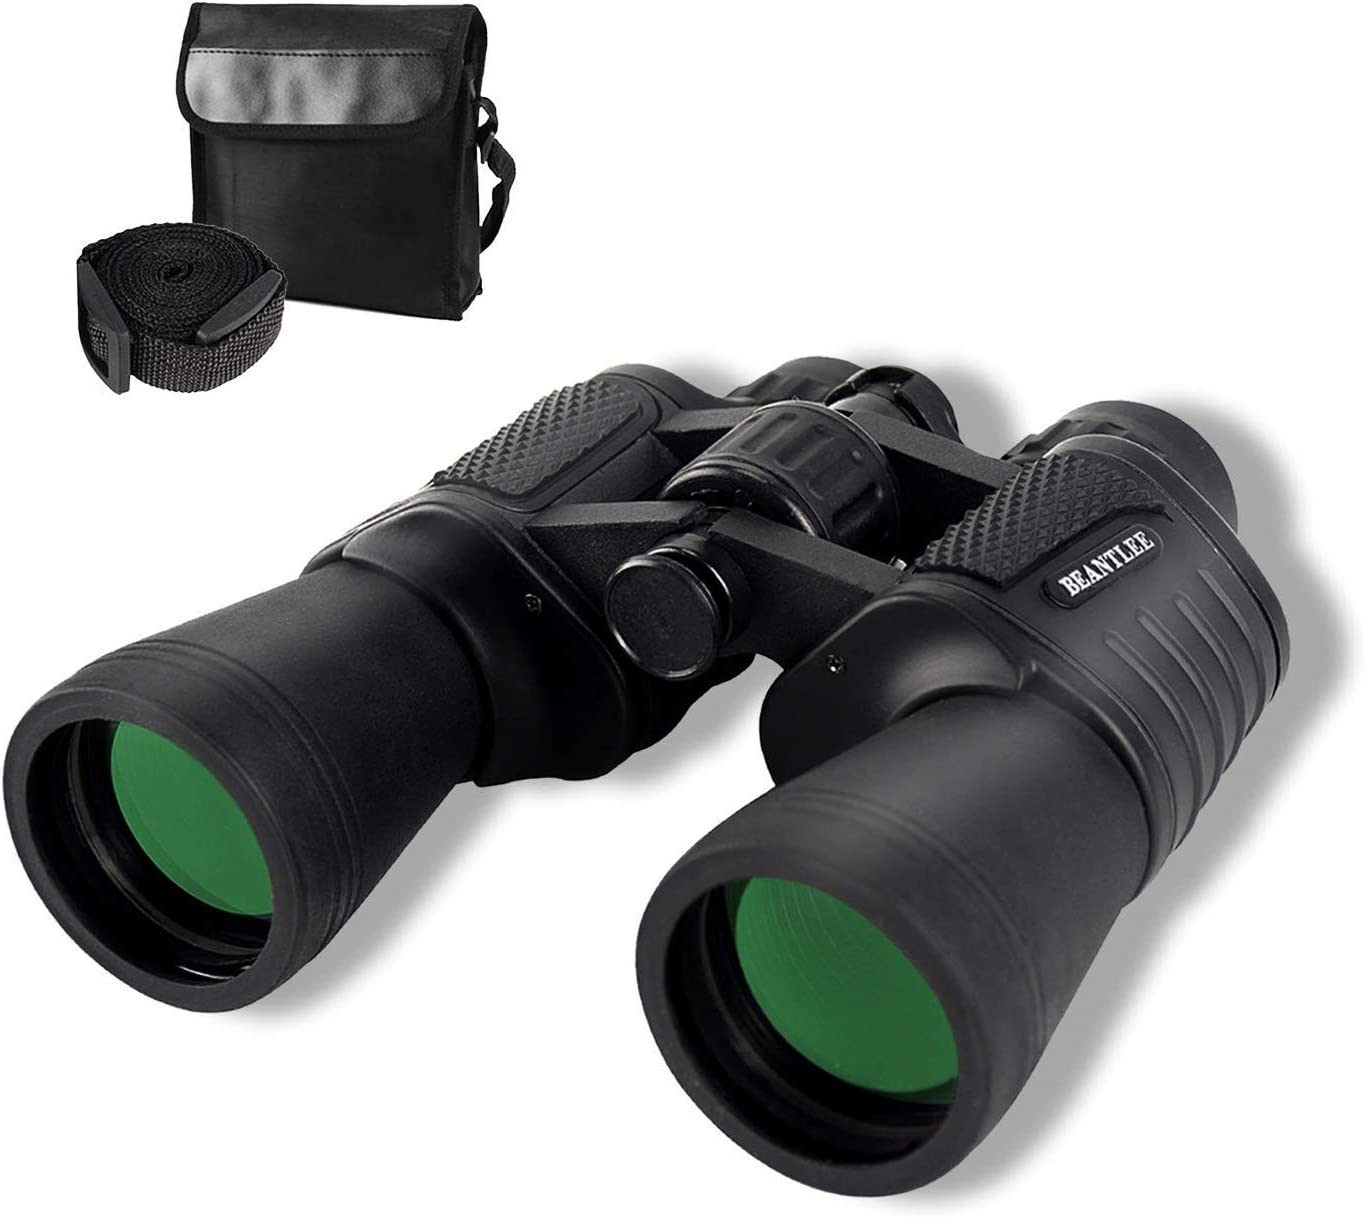 Binoculars for Adults,UncleHu 20X50 Porro Prism Compact Waterproof Binoculars with Low Light Night Vision, HD High Power Binoculars for Bird Watching, Travel, Hunting, Wildlife, Sports, Concert